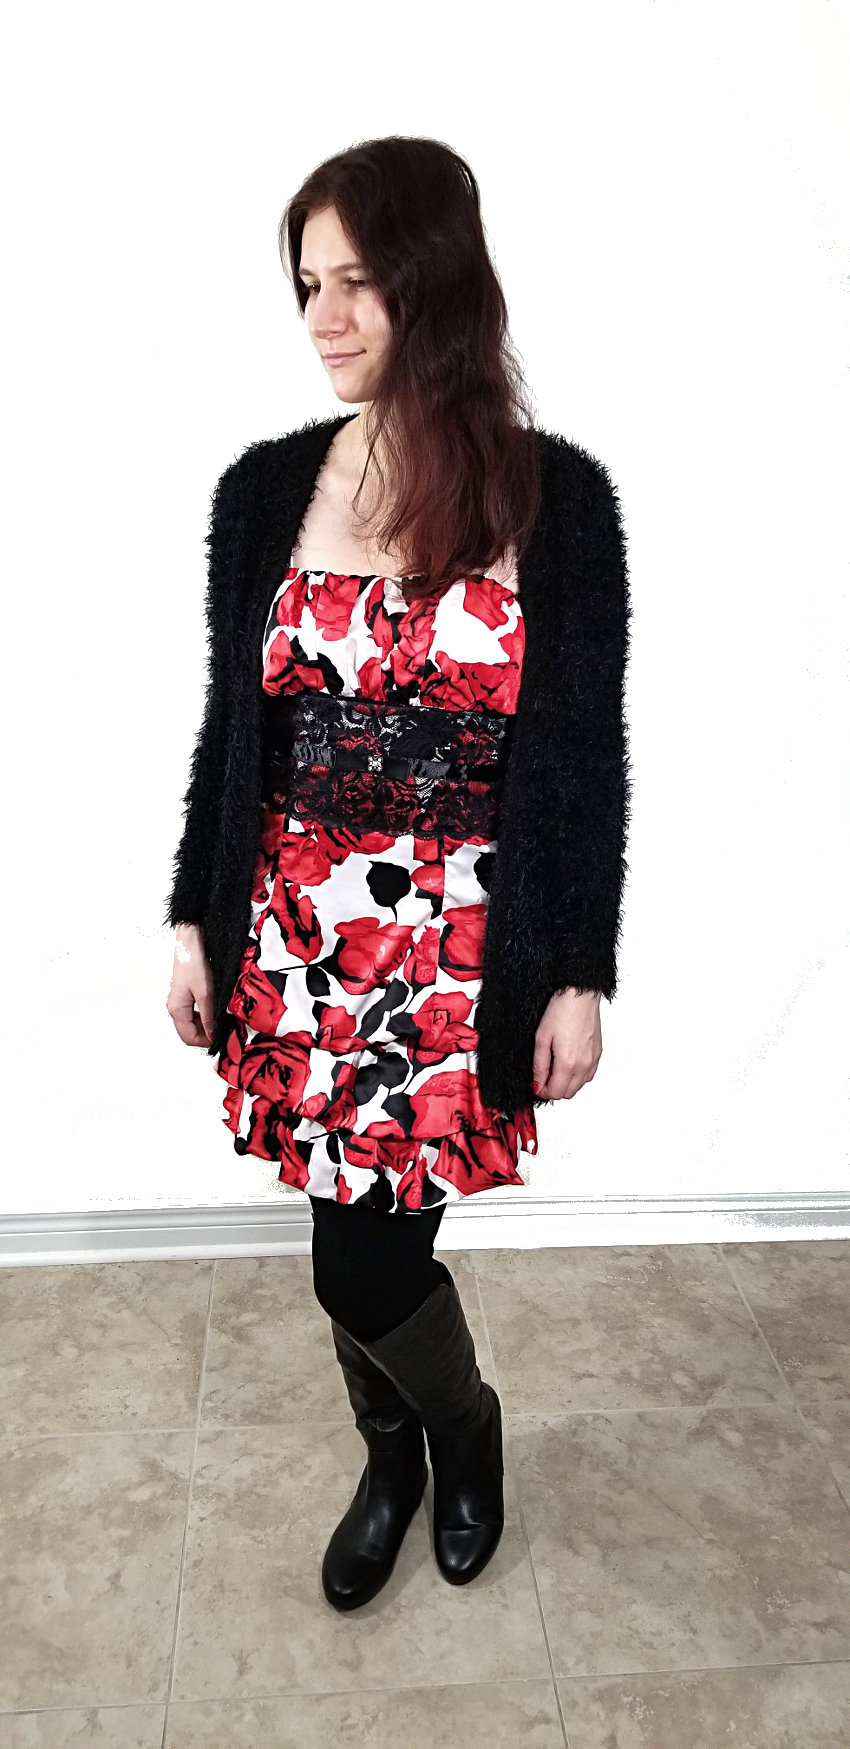 Polar Bear Style Valentine's Day White Dress Red Roses Black Boots